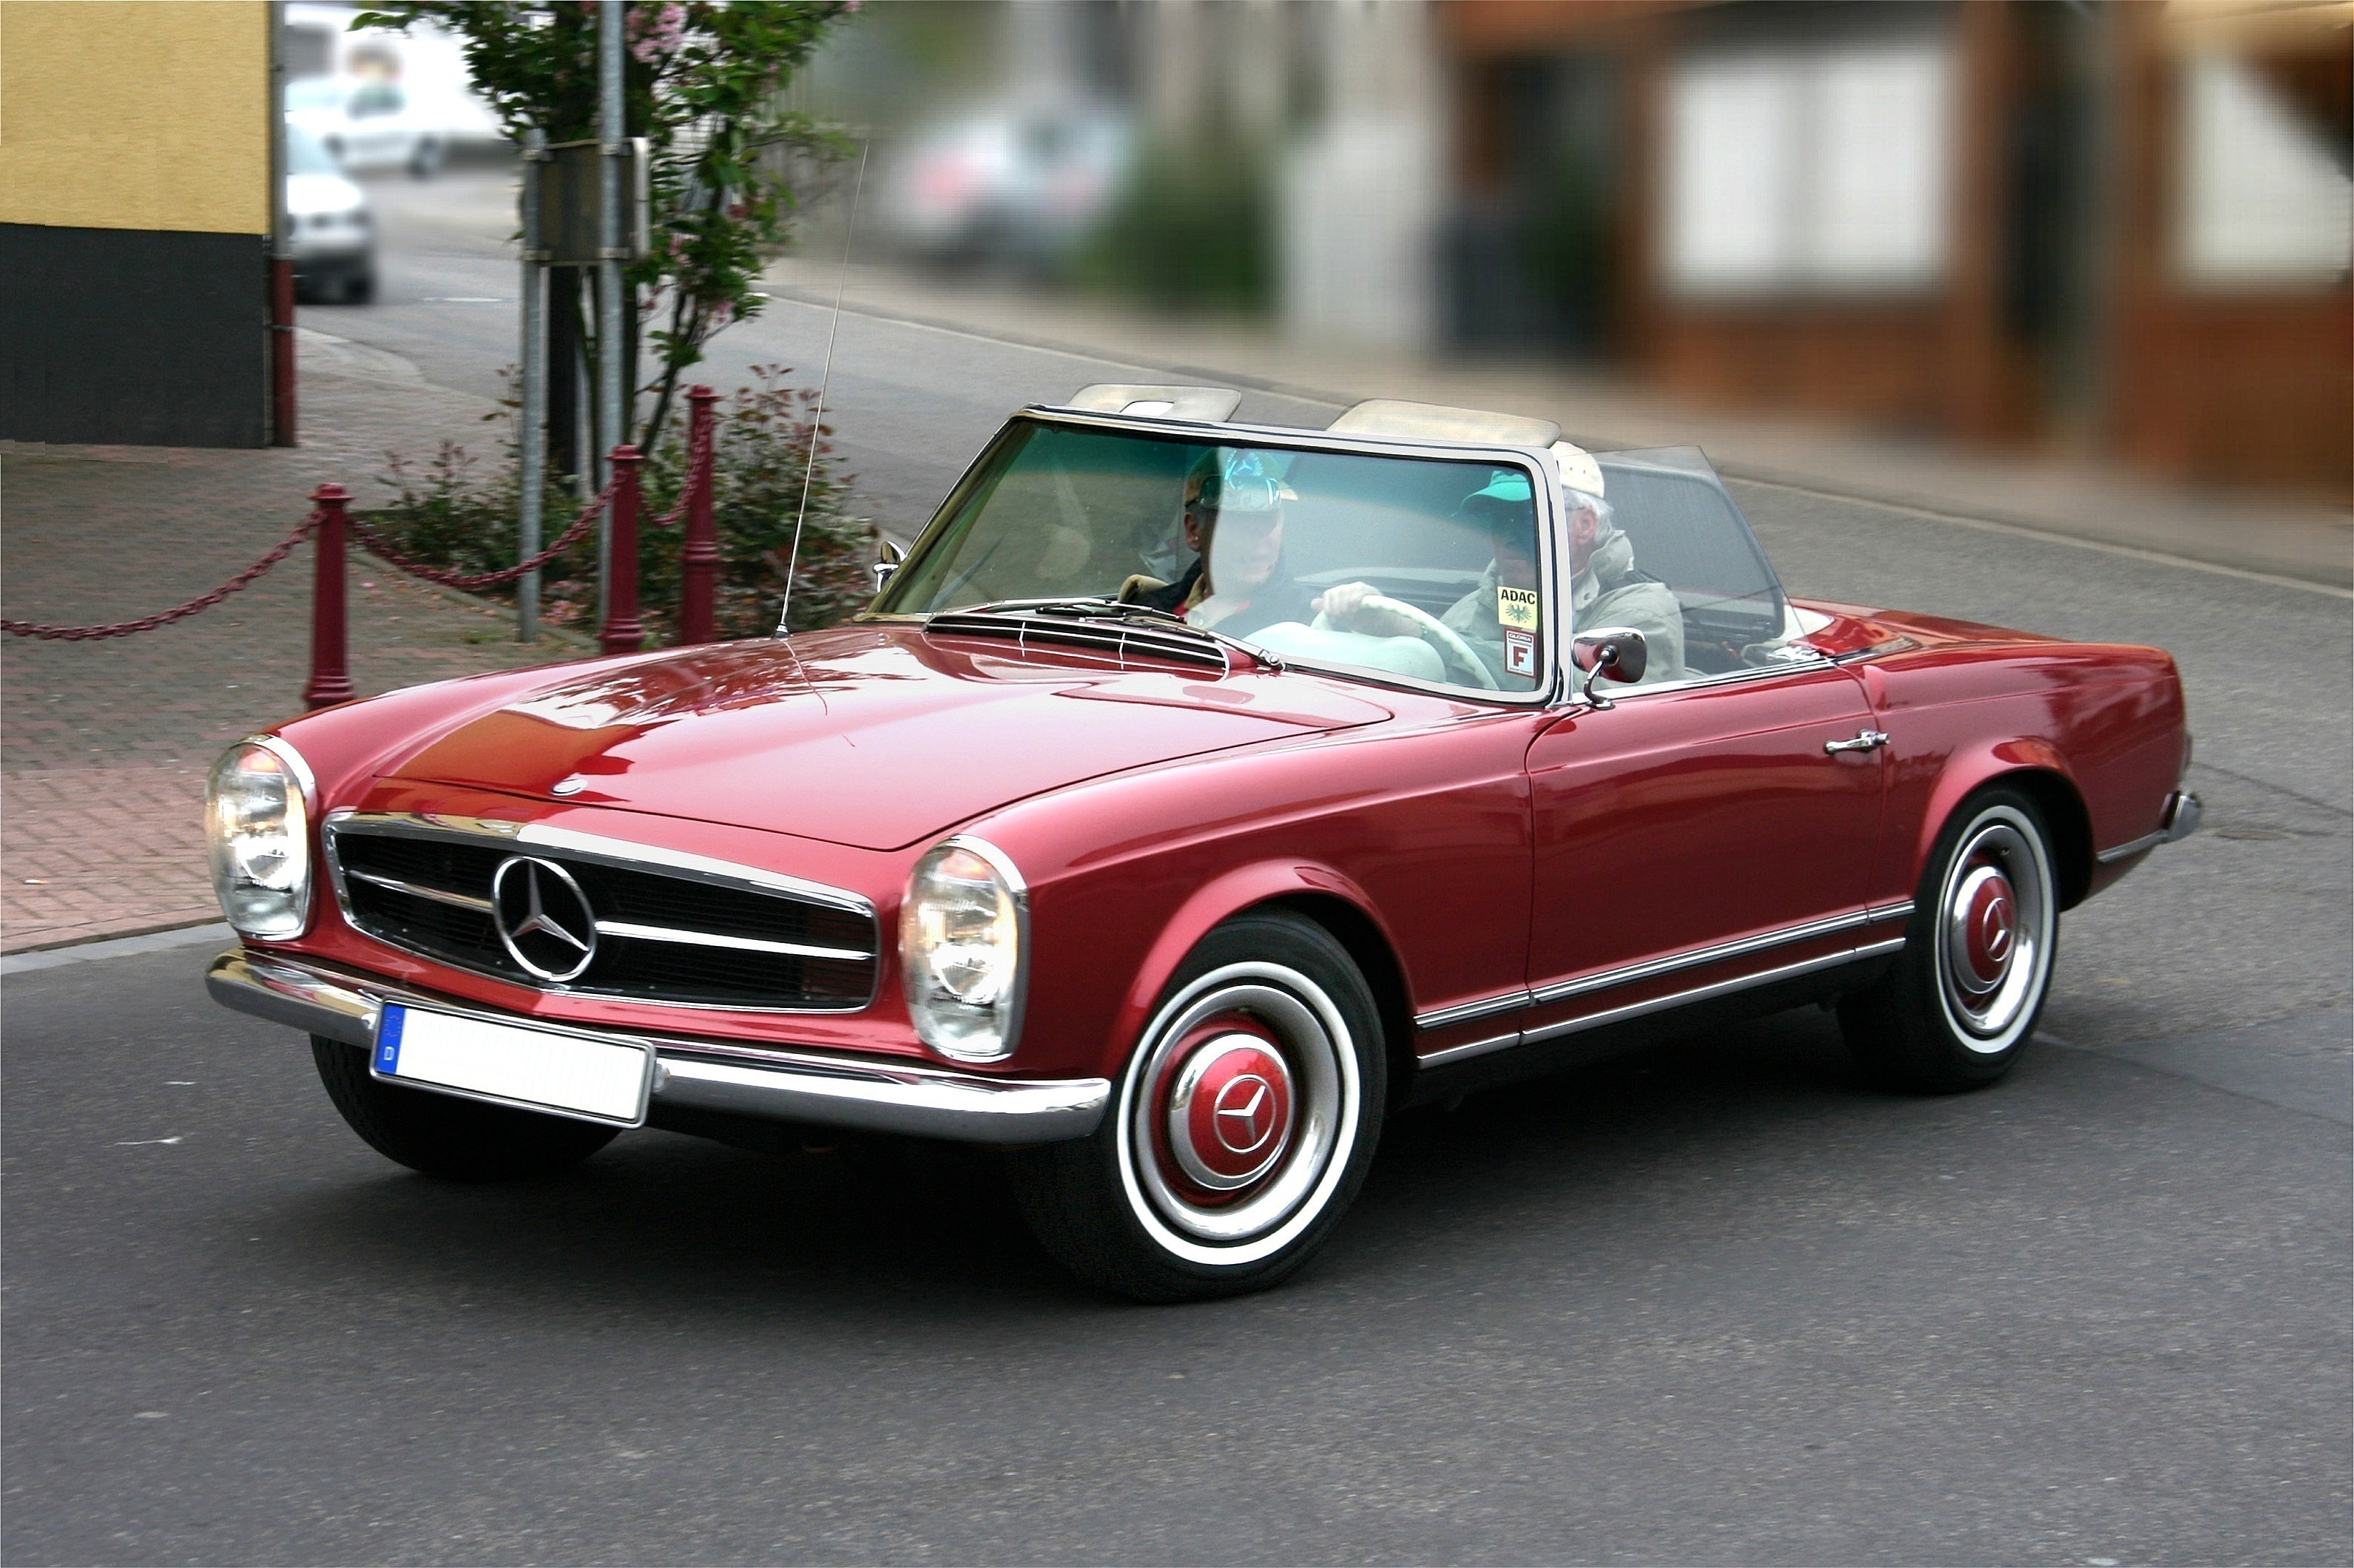 mercedes-benz 230 sl #0